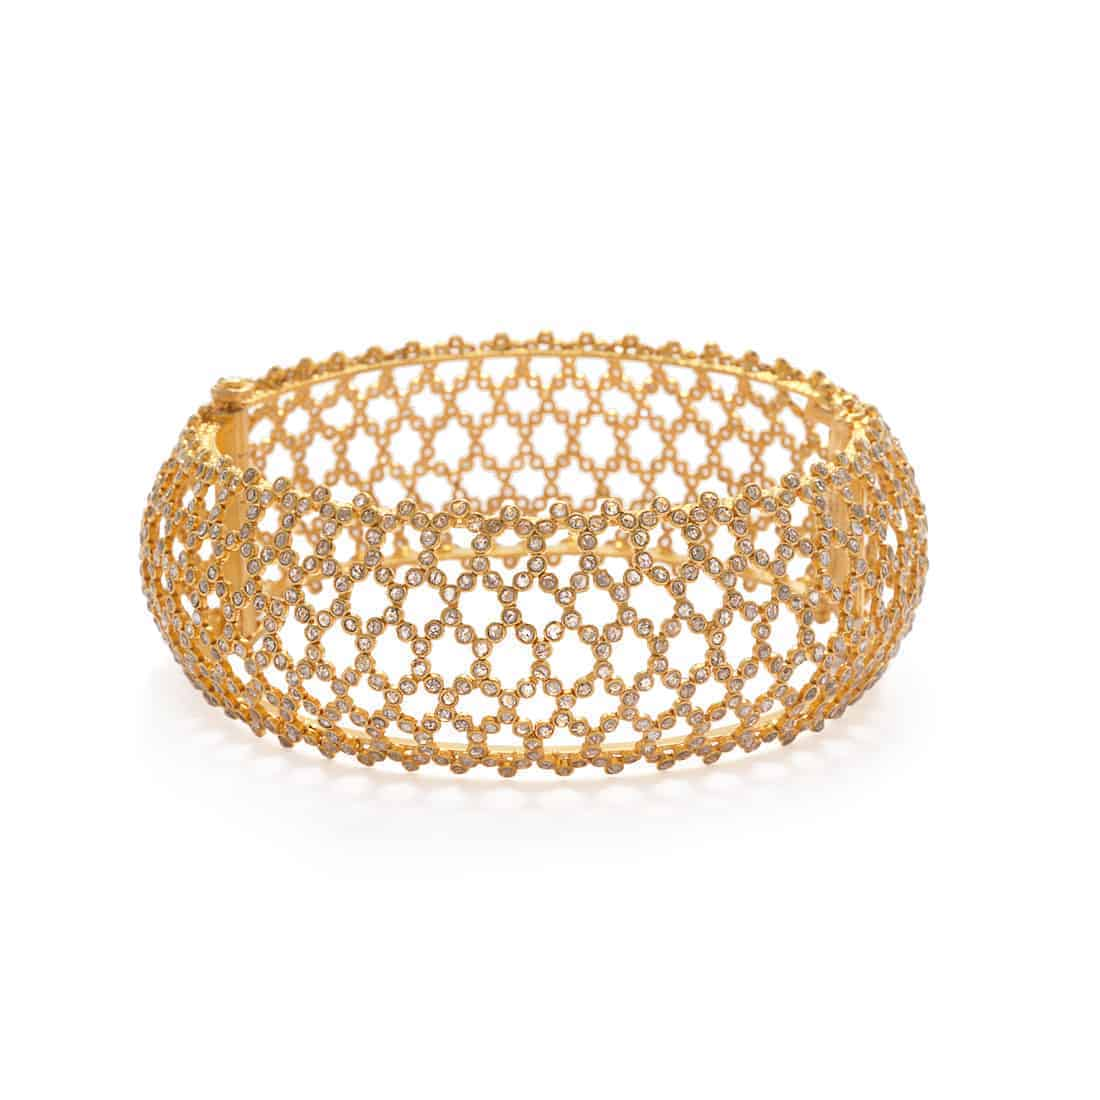 22182 - 22ct Diya Gold Uncut Polki Diamond Kada Bangle